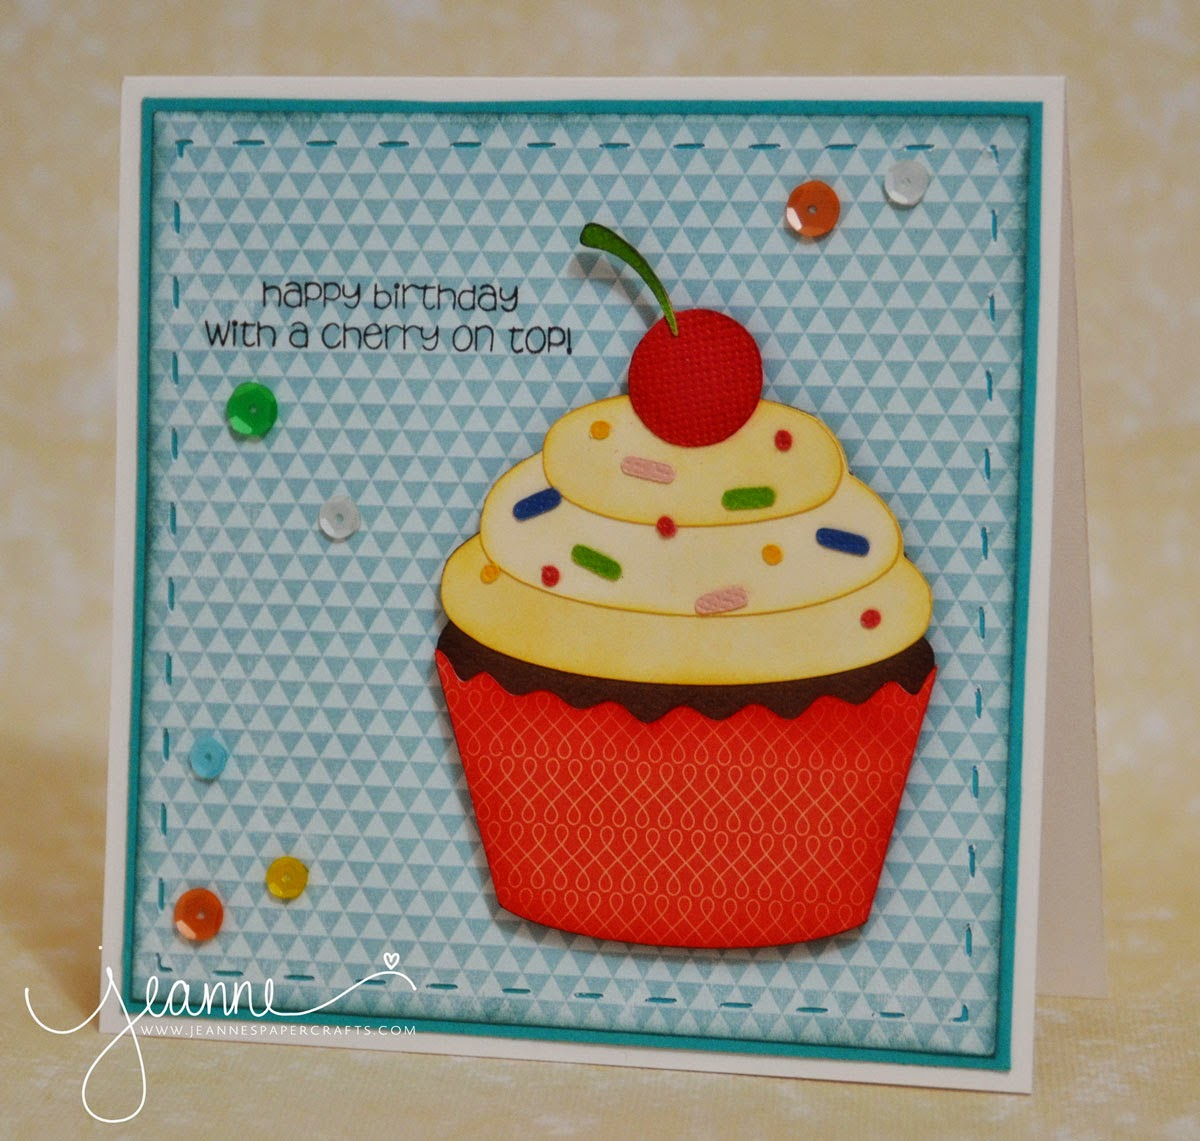 Jeannes paper crafts happy birthday with a cherry on top i used the stitched shapes cut files to create the layer for my background the card is a 5x5 inch square card jeuxipadfo Gallery